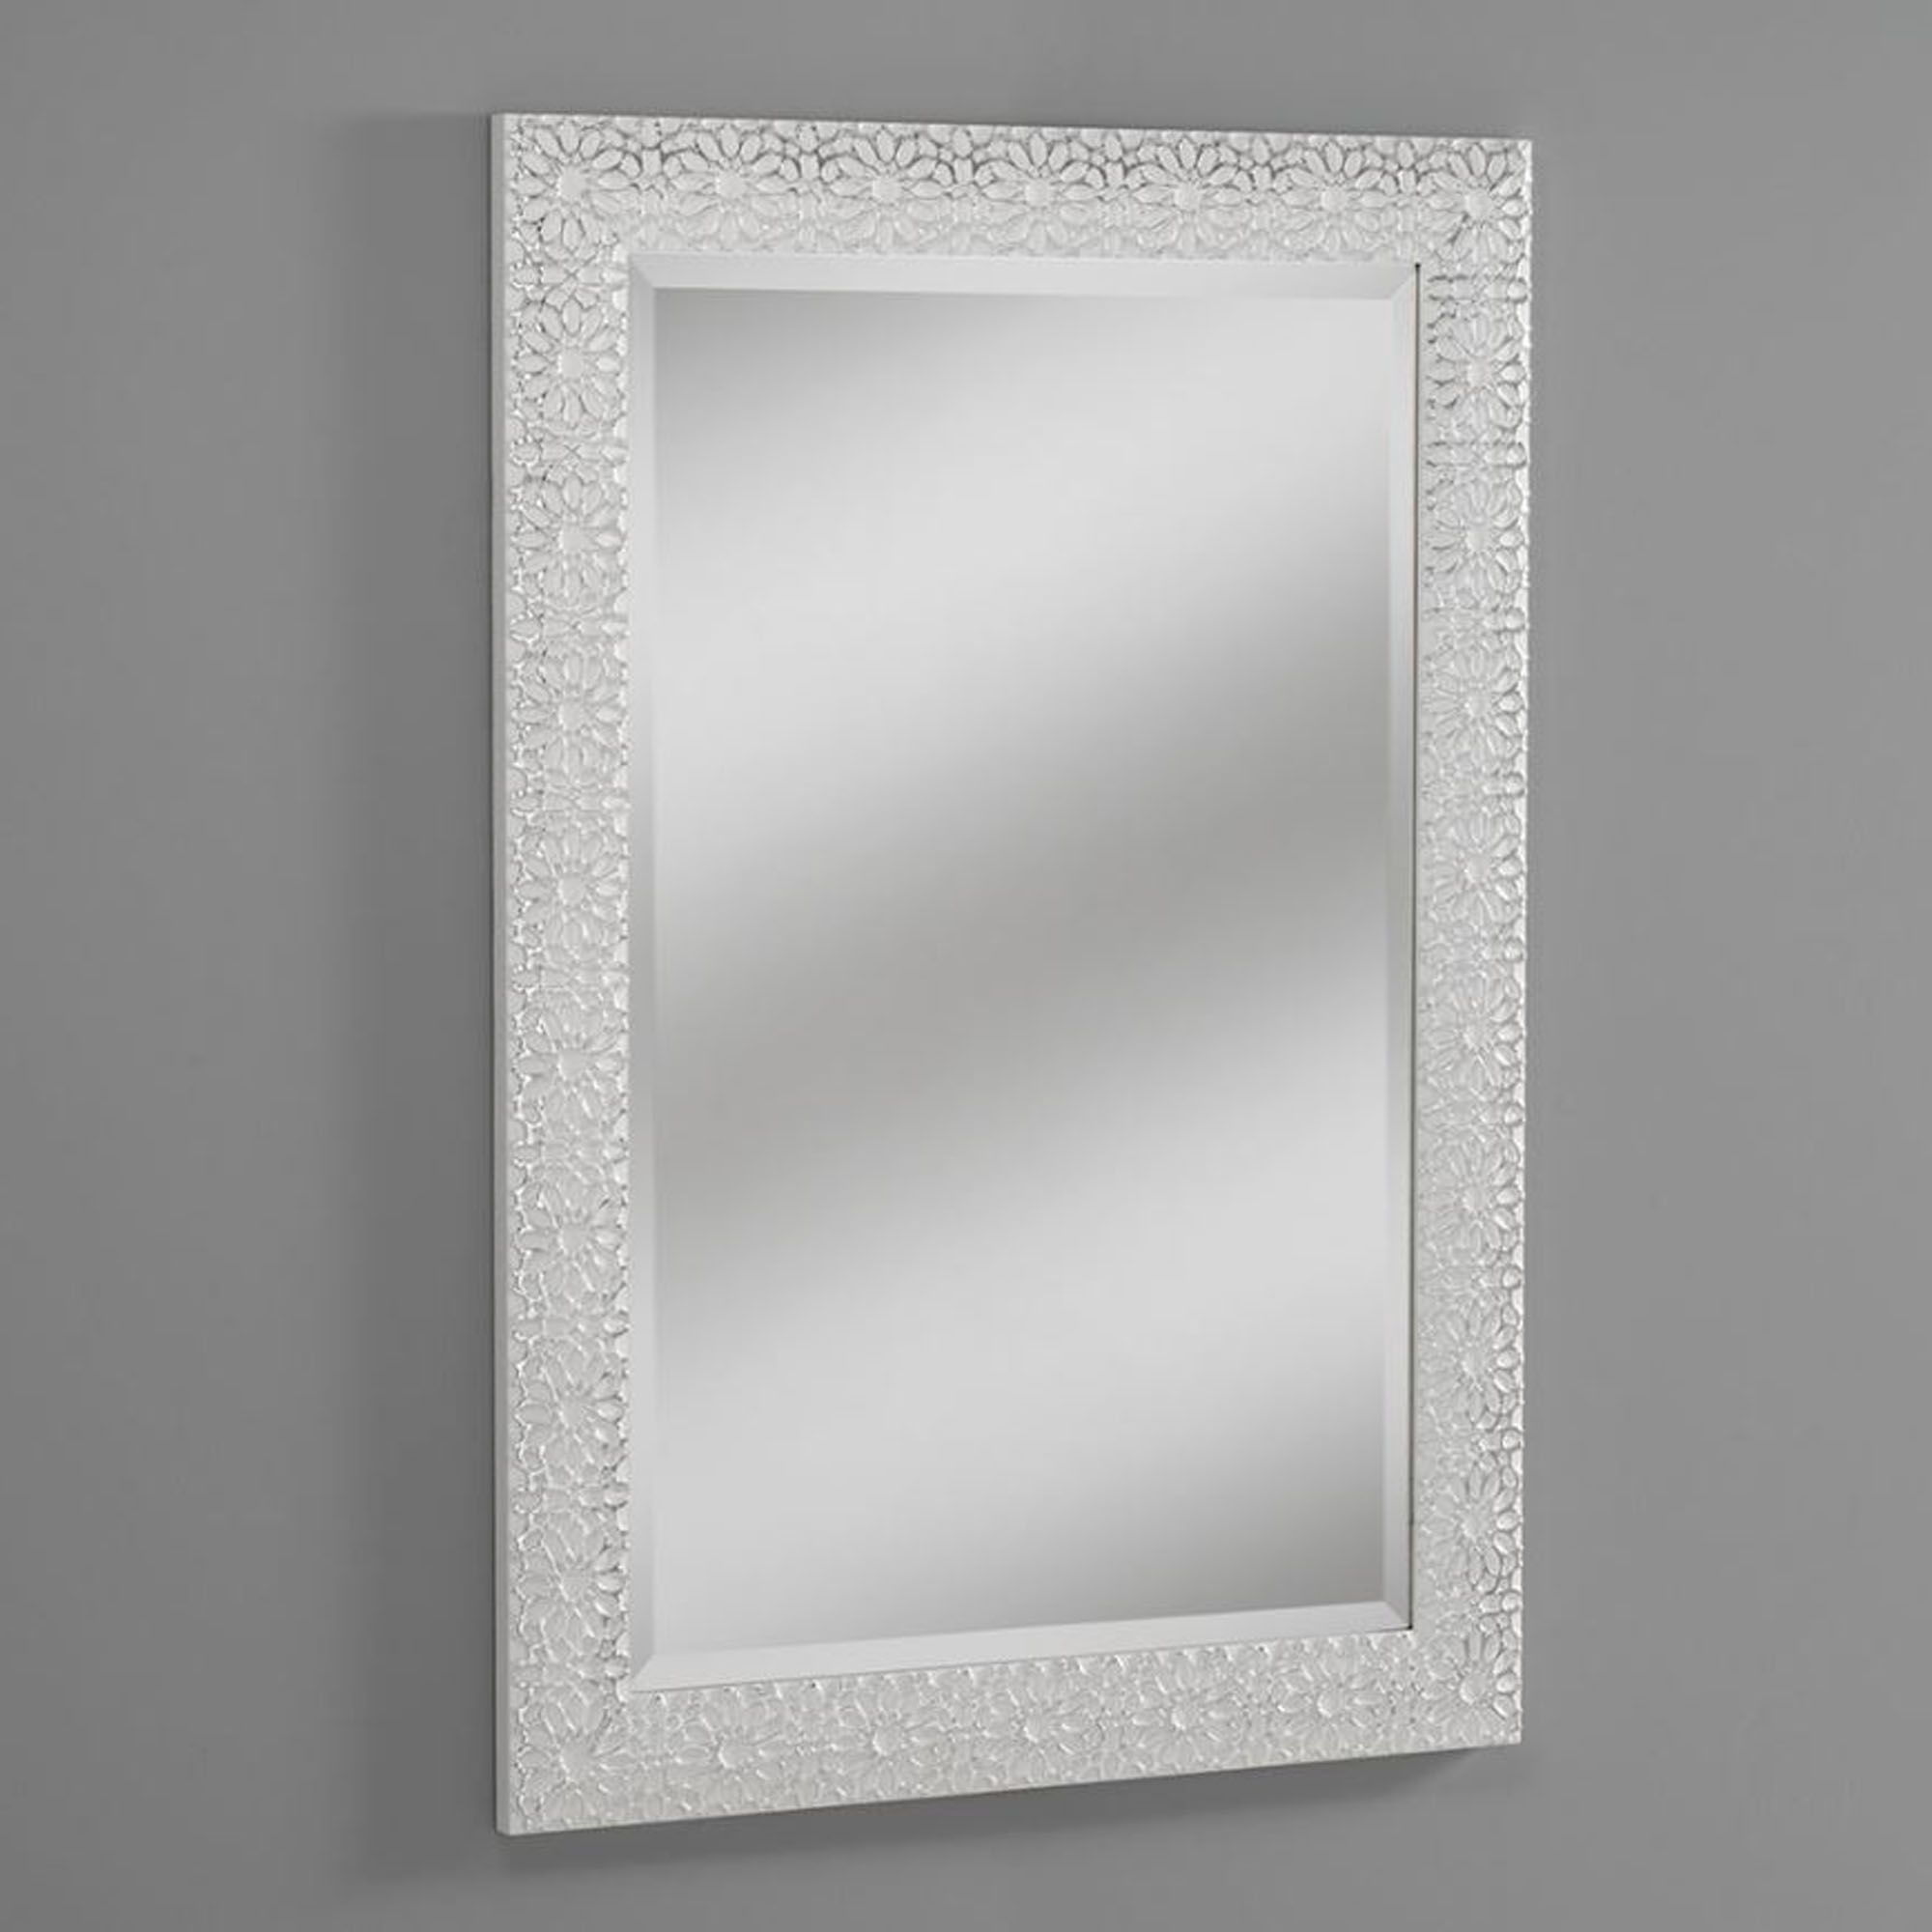 Best And Newest Decorative Bathroom Wall Mirrors With Regard To Petal White Decorative Wall Mirror (View 2 of 20)